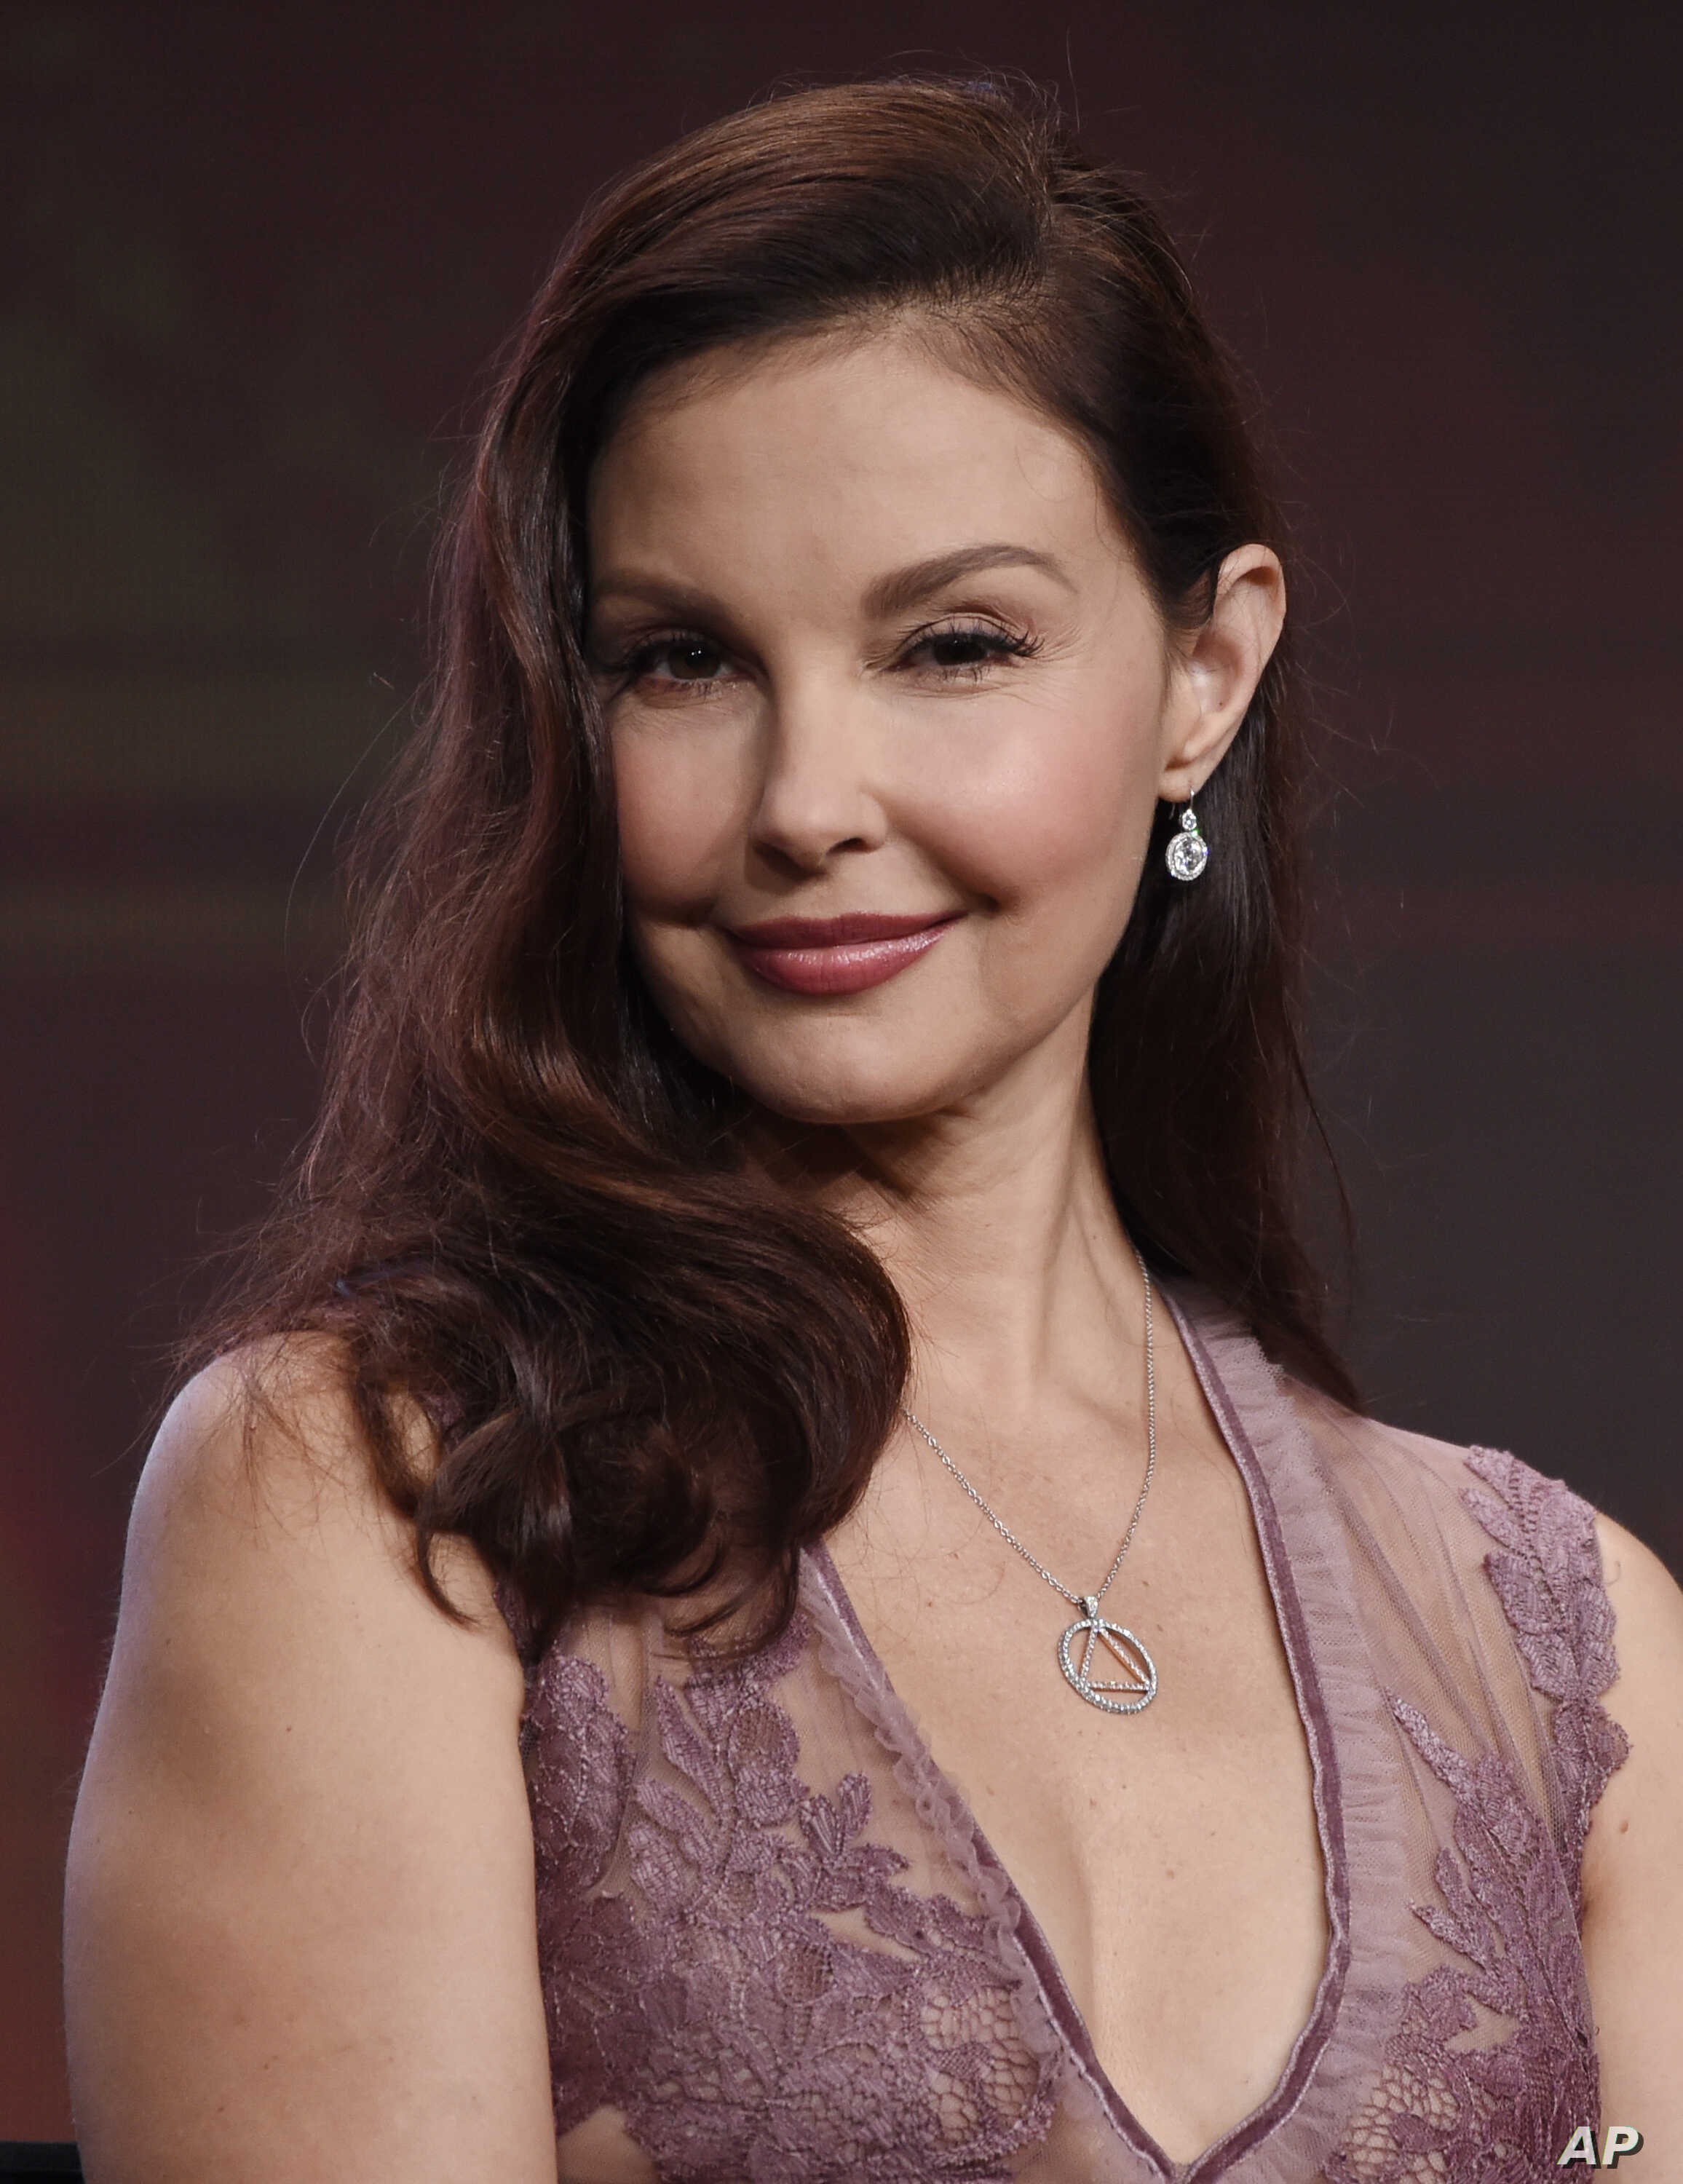 Ashley Judd Says A 'Deal' Helped Her Flee from Weinstein ...